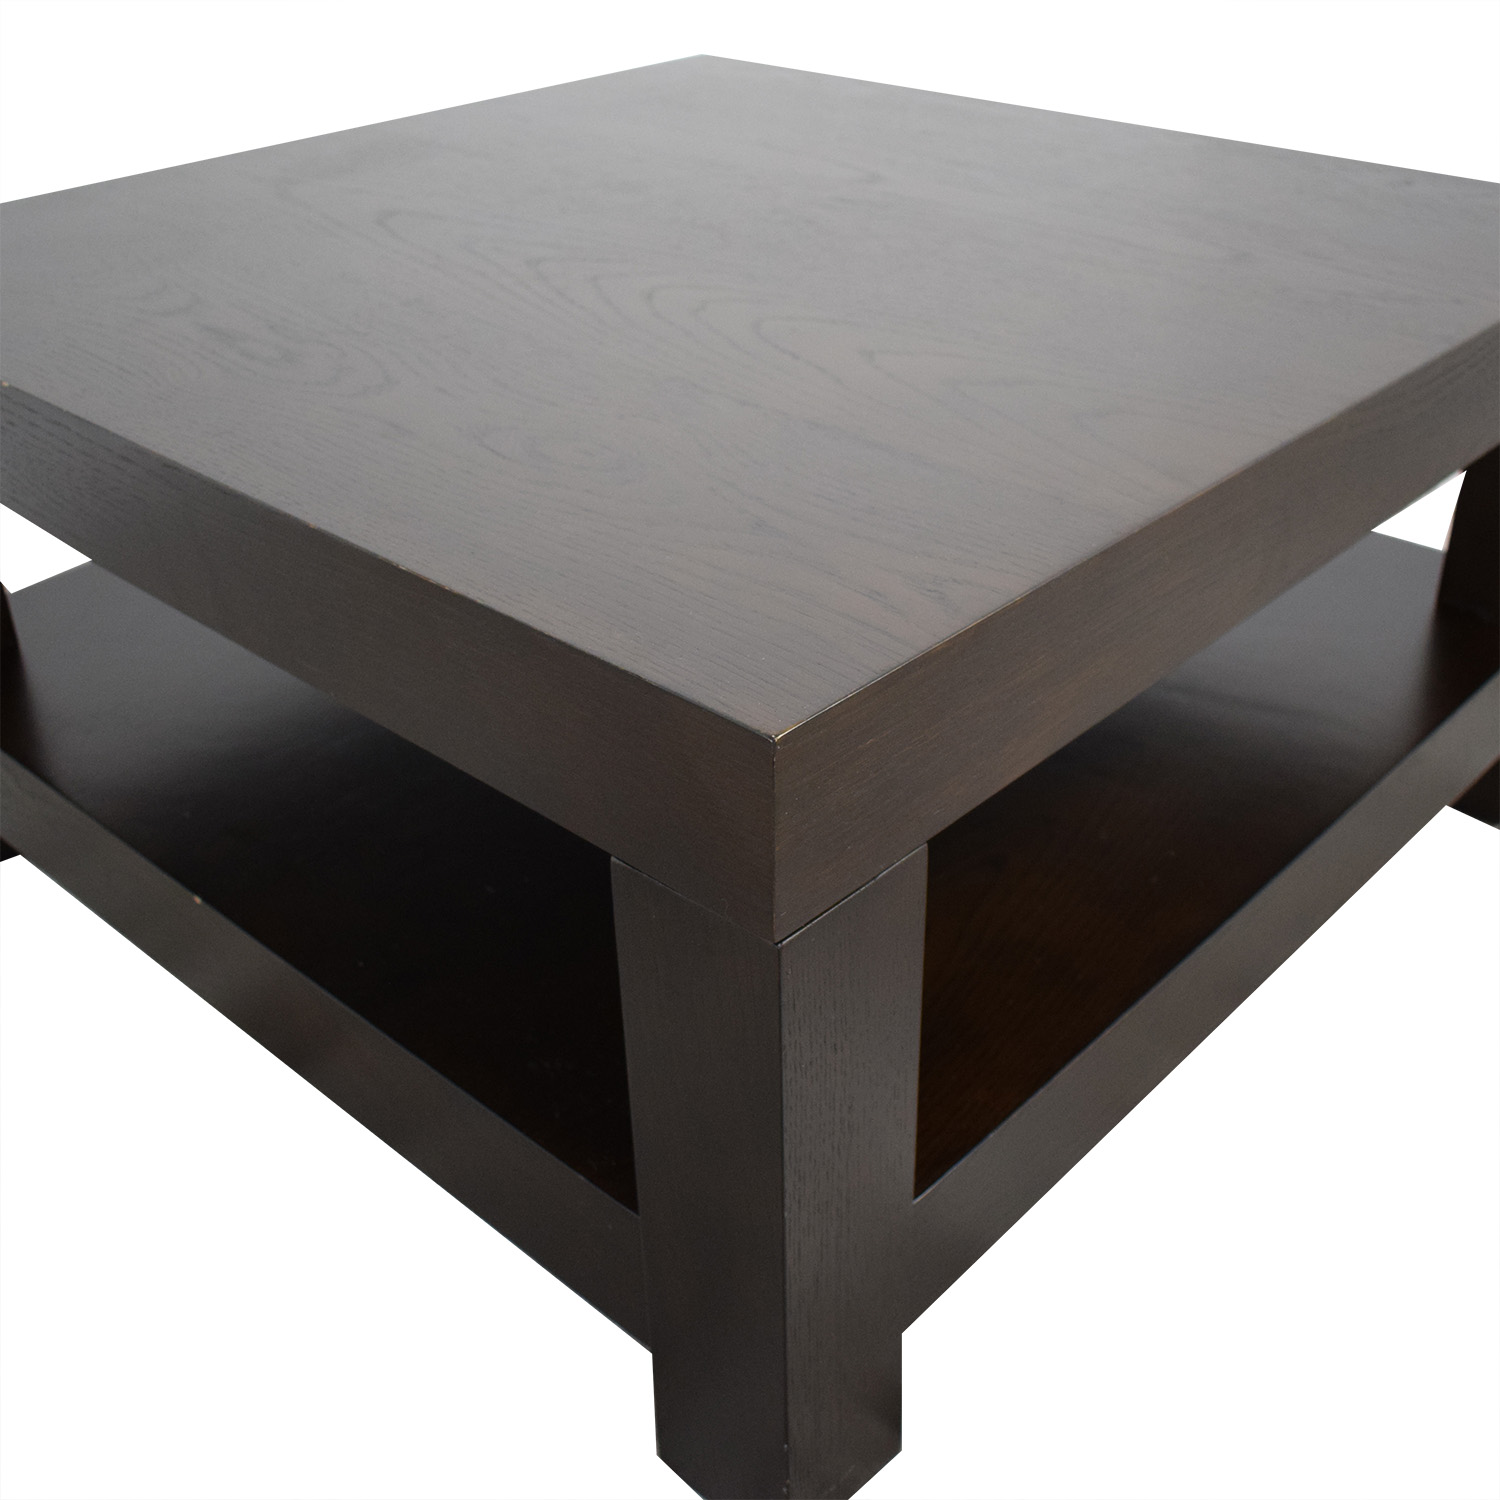 West Elm West Elm Parsons Coffee Table dark brown